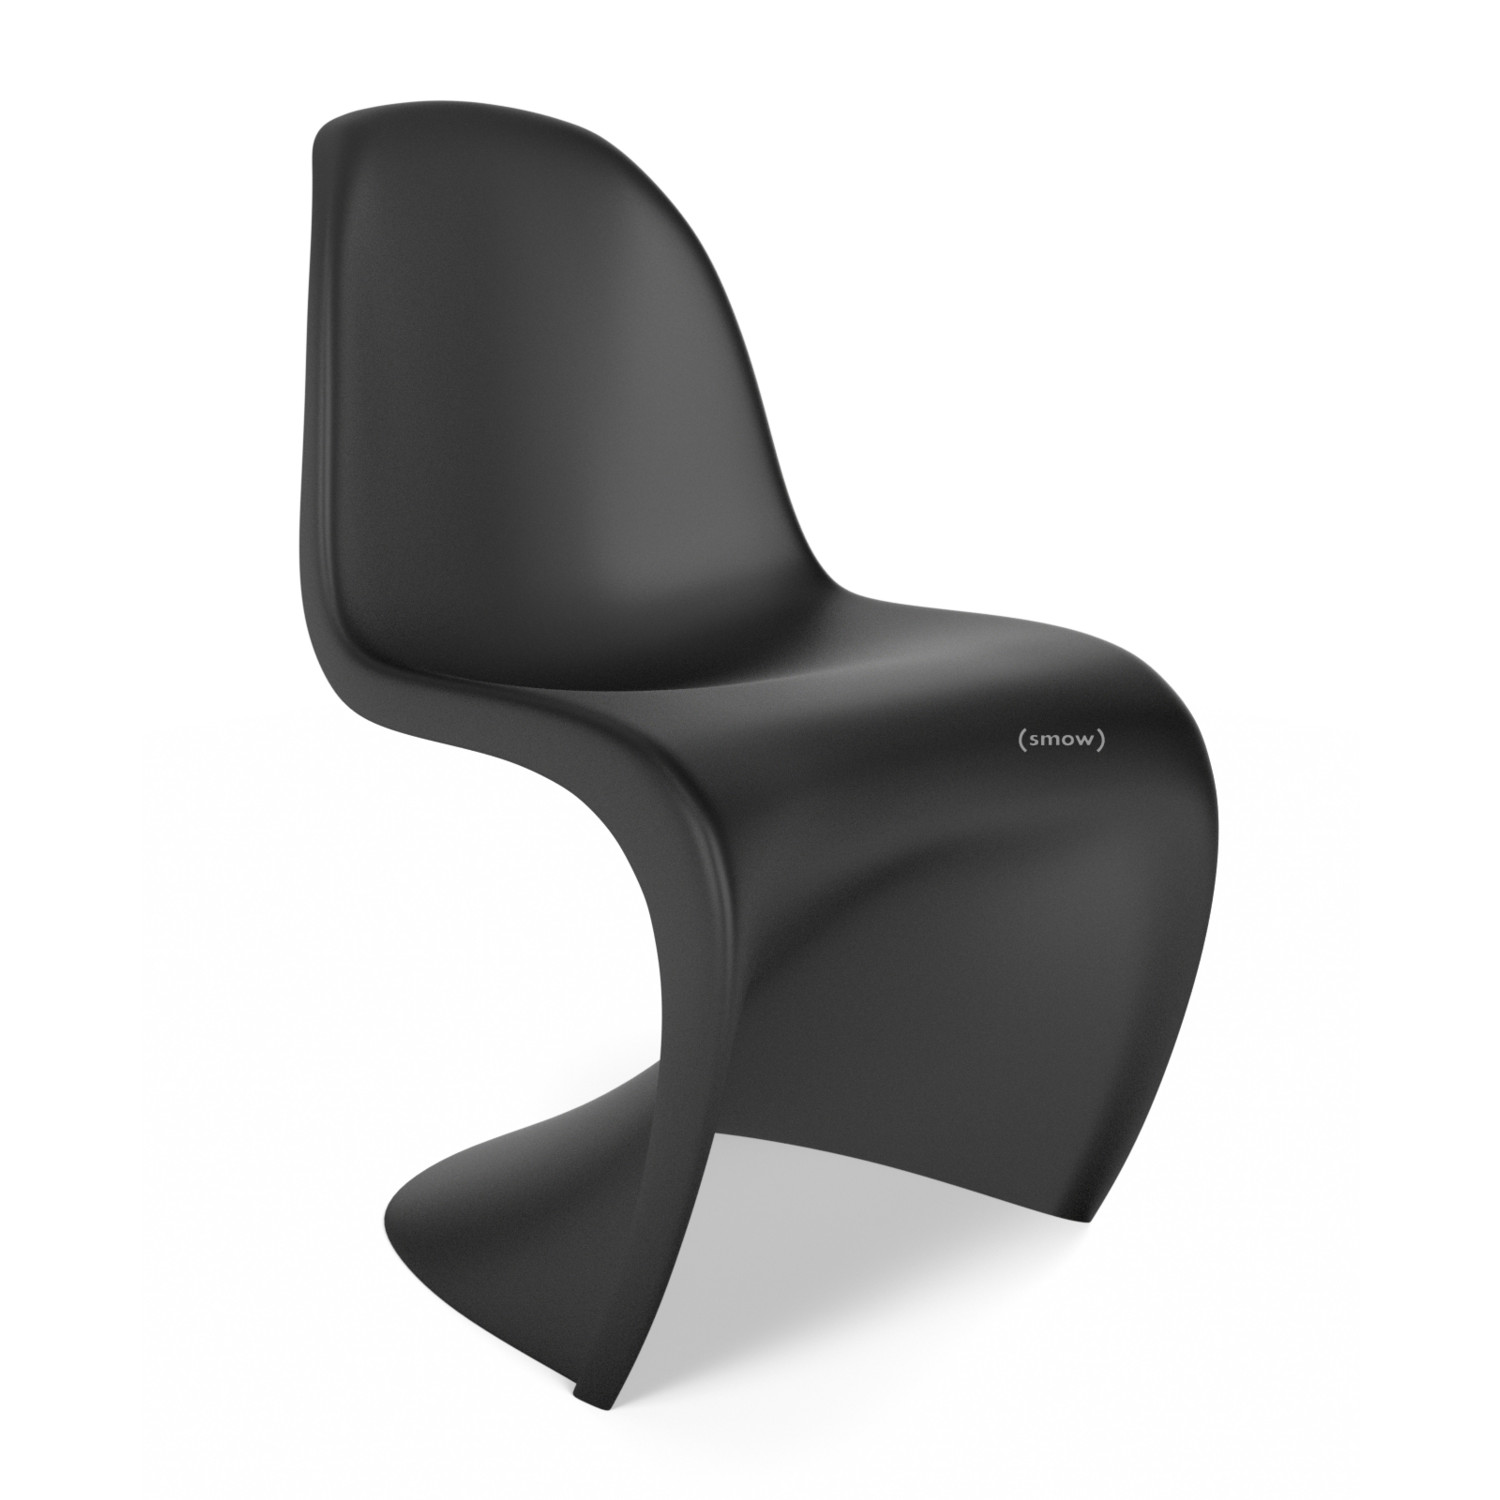 vitra panton chair basic dark von verner panton 1999 designerm bel von. Black Bedroom Furniture Sets. Home Design Ideas